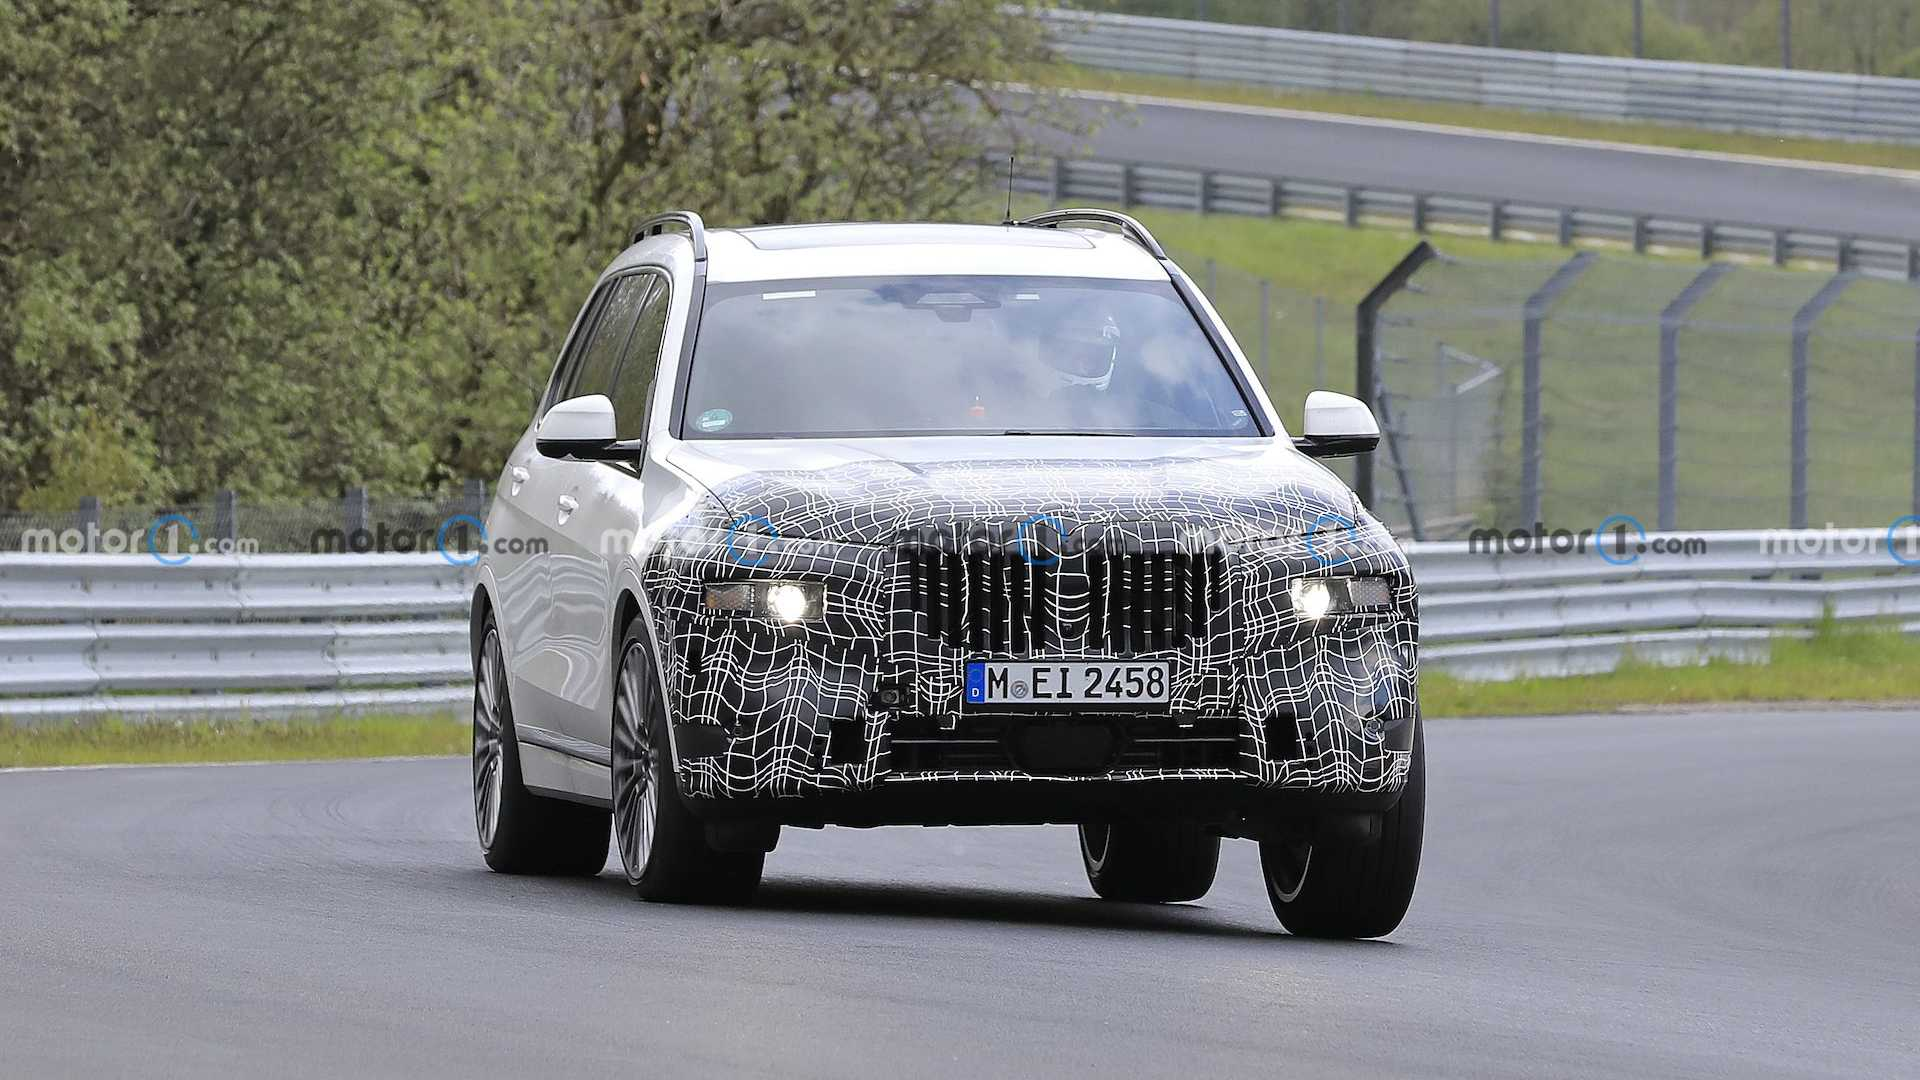 BMW has been making many headlines lately, what with the introduction of the M4 Competition Convertible with M xDrive, the reveal of the all-electric i4 and the launch of the M4 GT3 racer. To top things off, an updated X7 hit the North Loop for some tests his weekend.